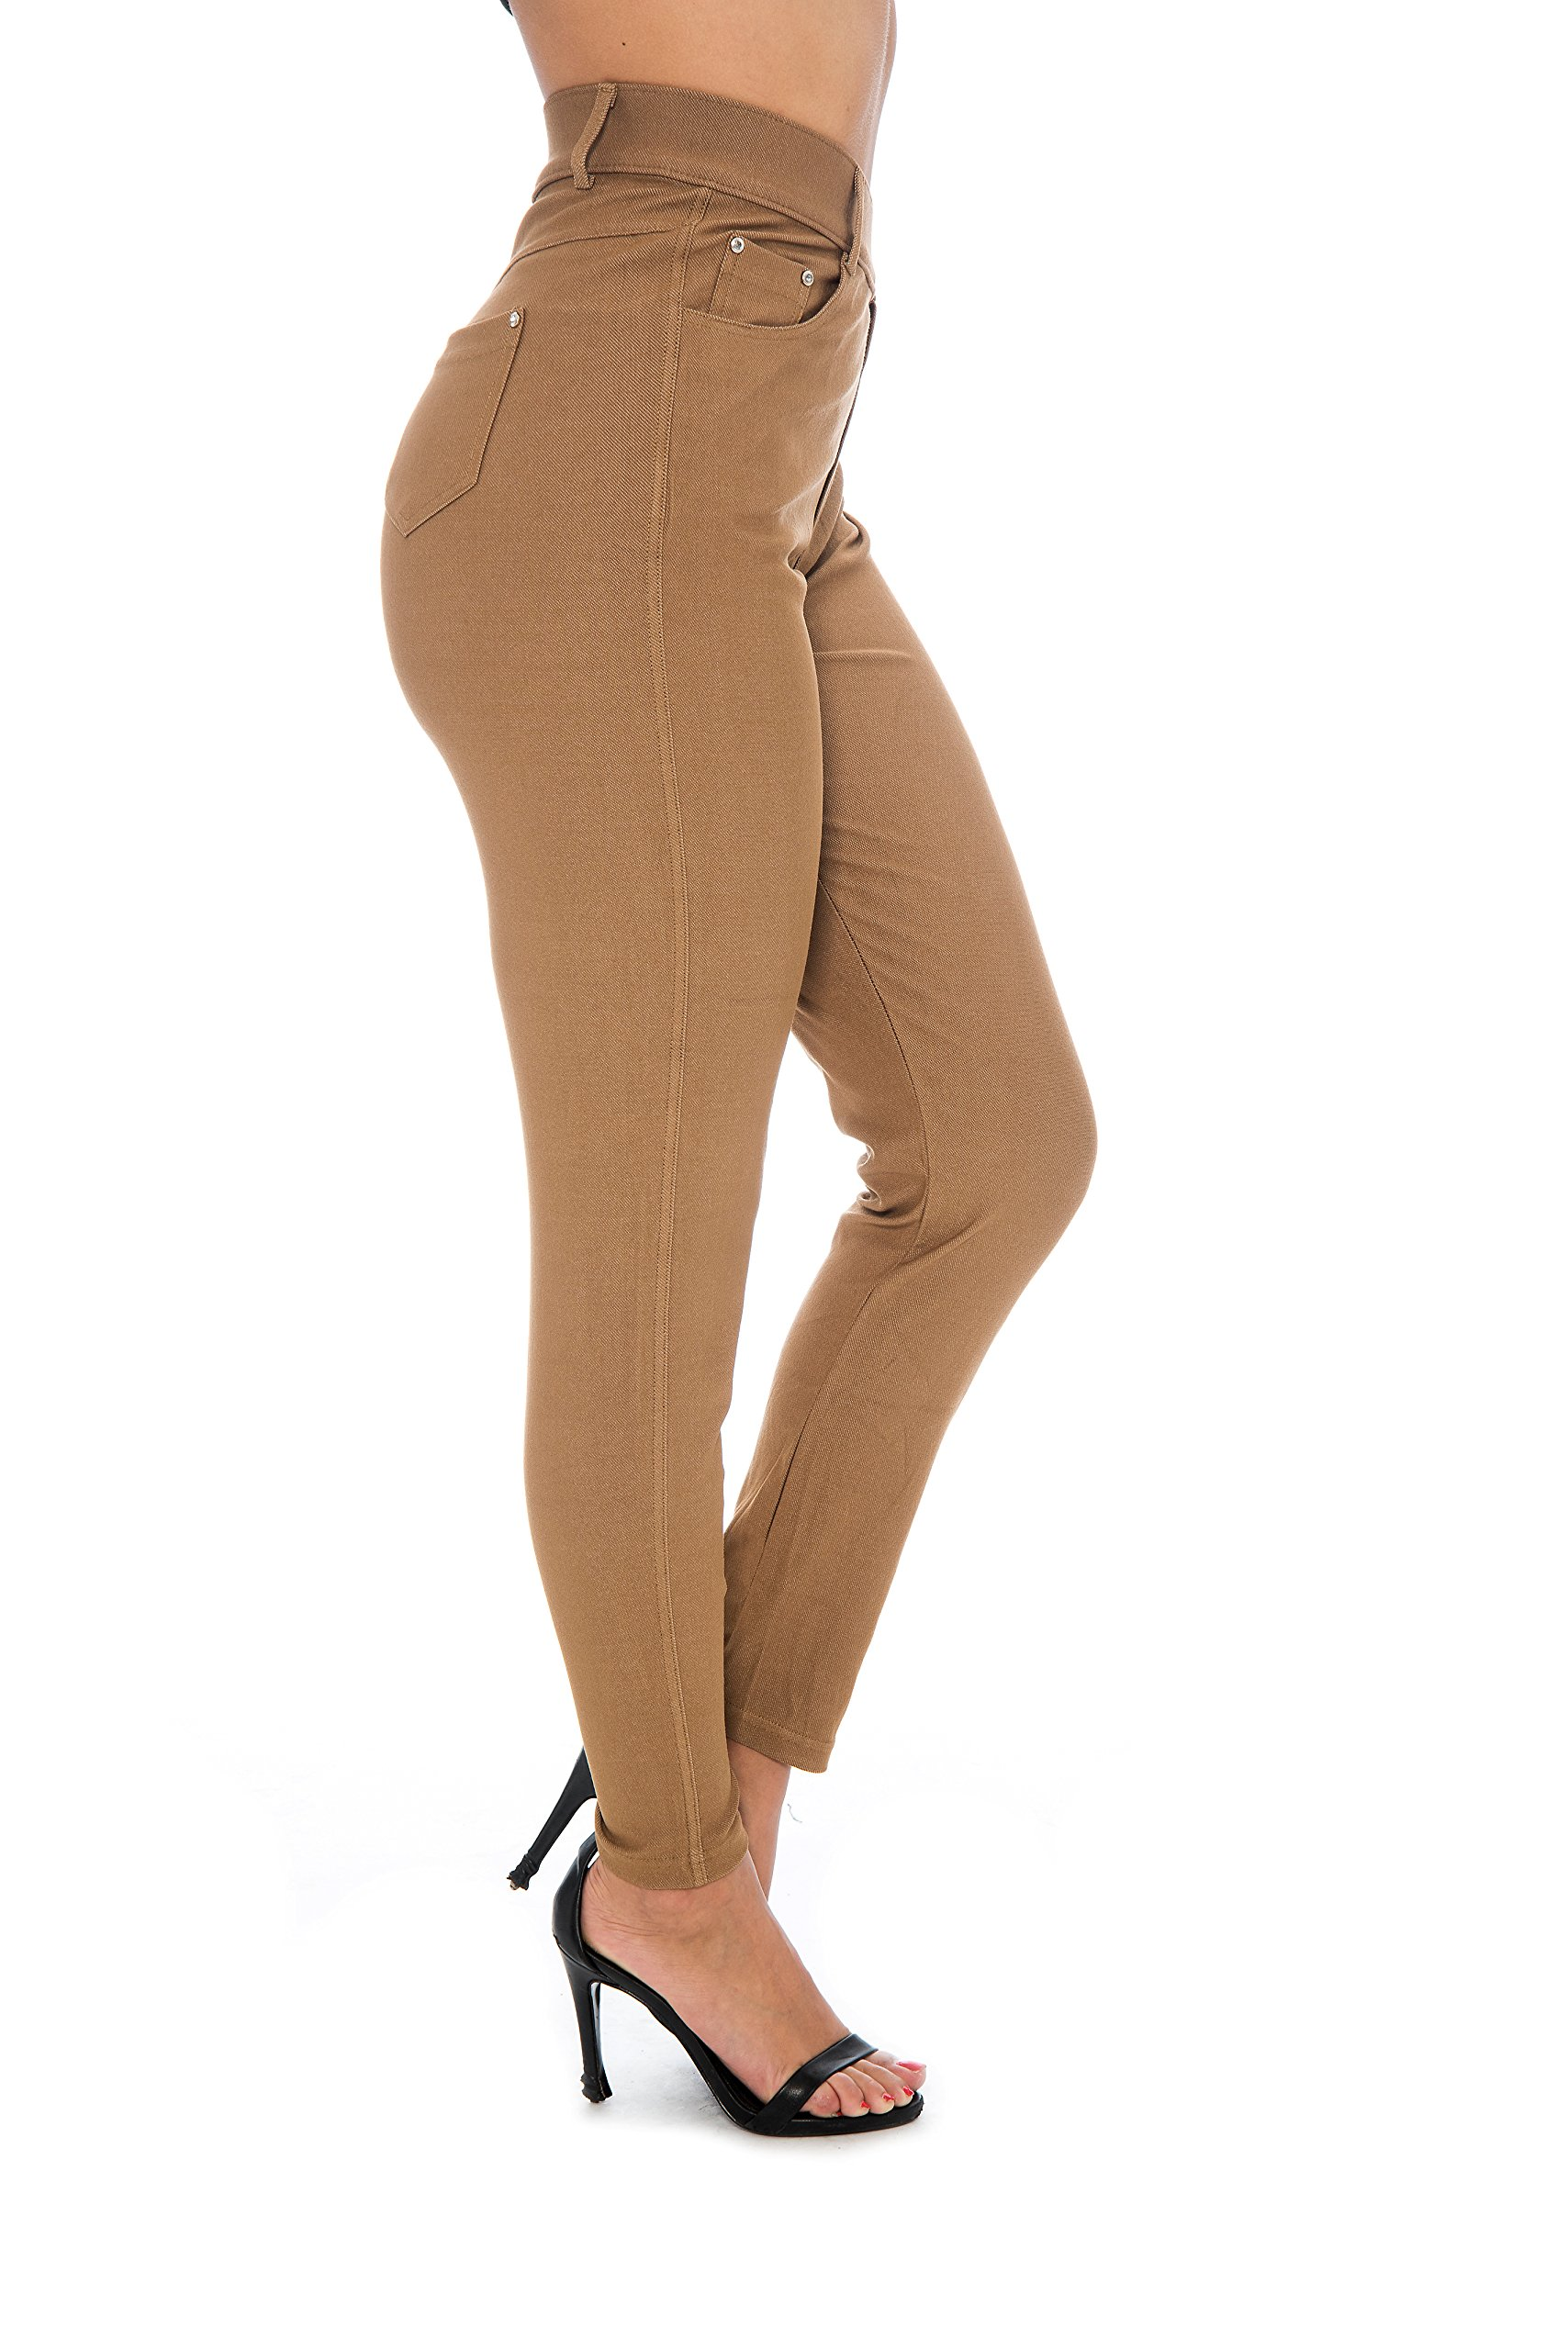 Unique Styles Women's Basic Jeggings Leggings Stretchy 5 Pockets Pants Regular Plus Sizes (2X, Khaki)